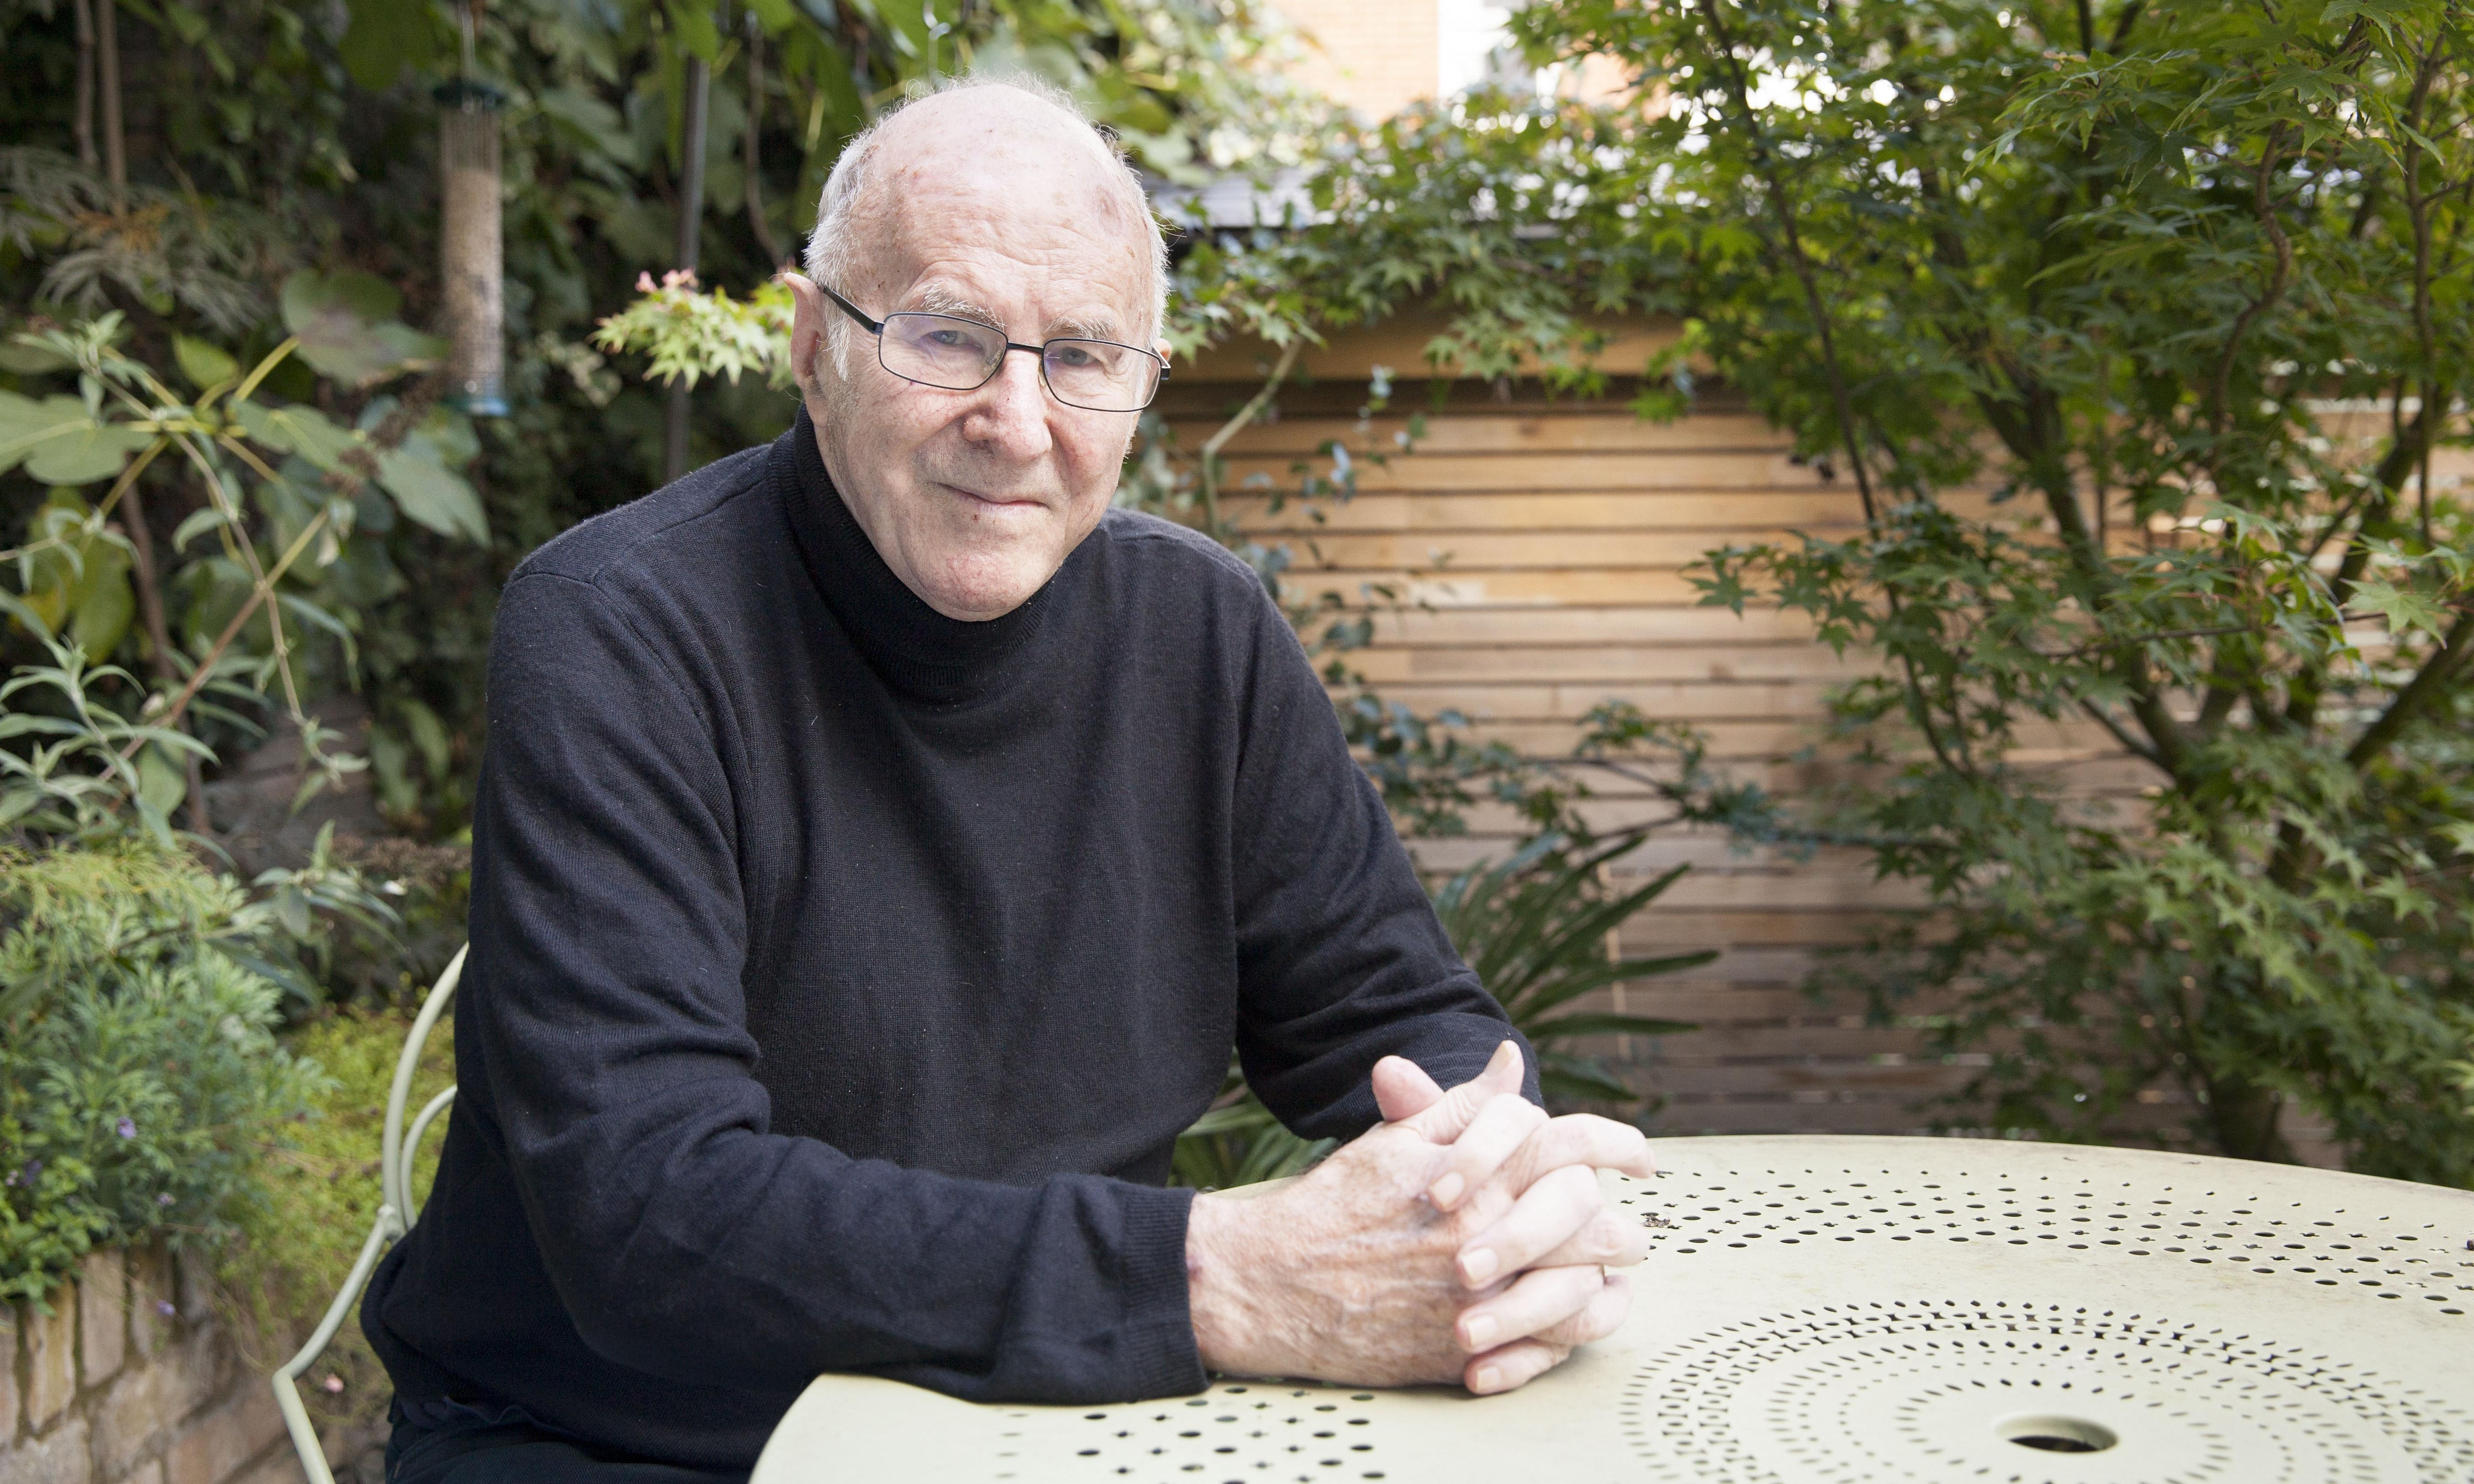 Clive James, writer, broadcaster and TV critic, dies aged 80